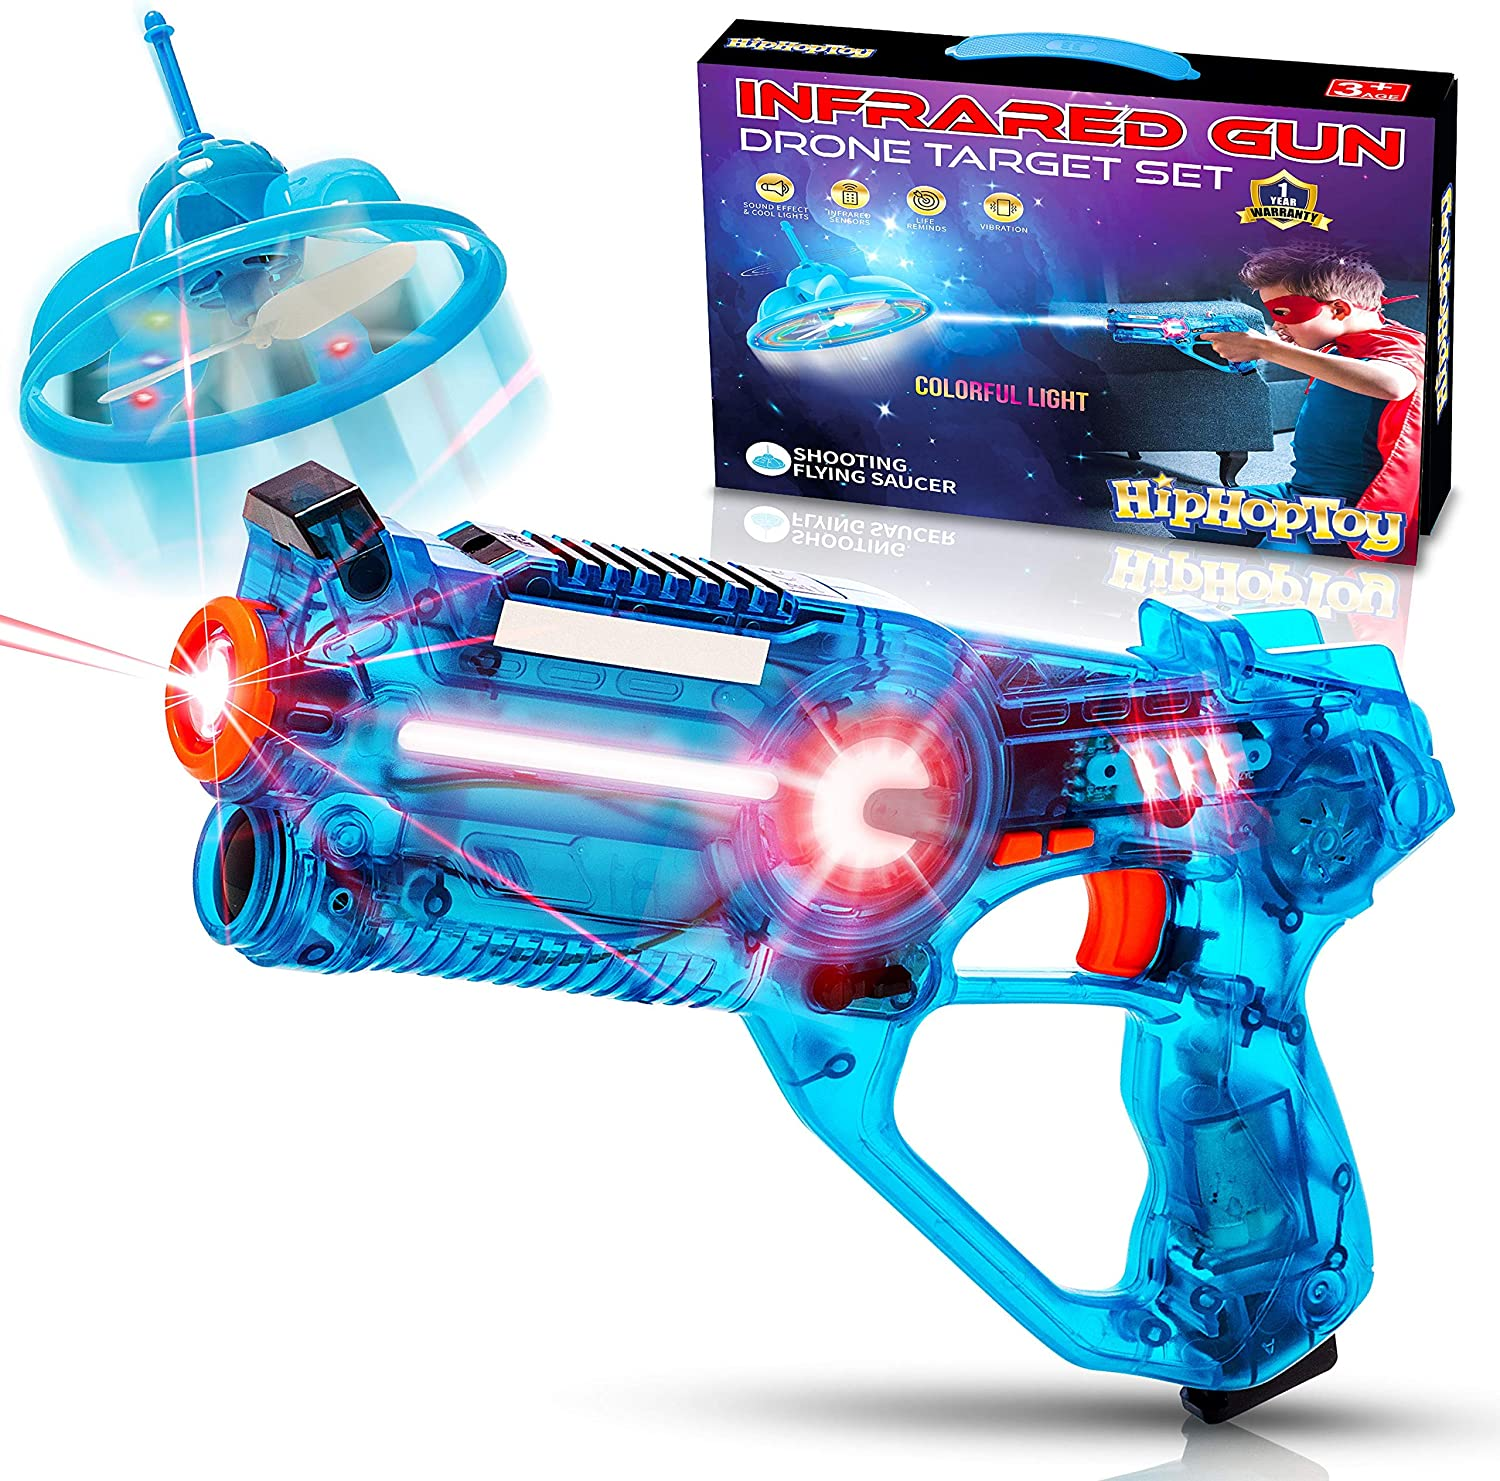 HIPHOPTOY Kids Laser Tag Gun Game with Flying Toy Drone Target, Infrared Lazer Shooting Game for Children with Fun LED Effects, Sounds, and 4 Gun Modes, Best Gift for Boys Ages 5 6 7 8 9 10 (Set of 1)